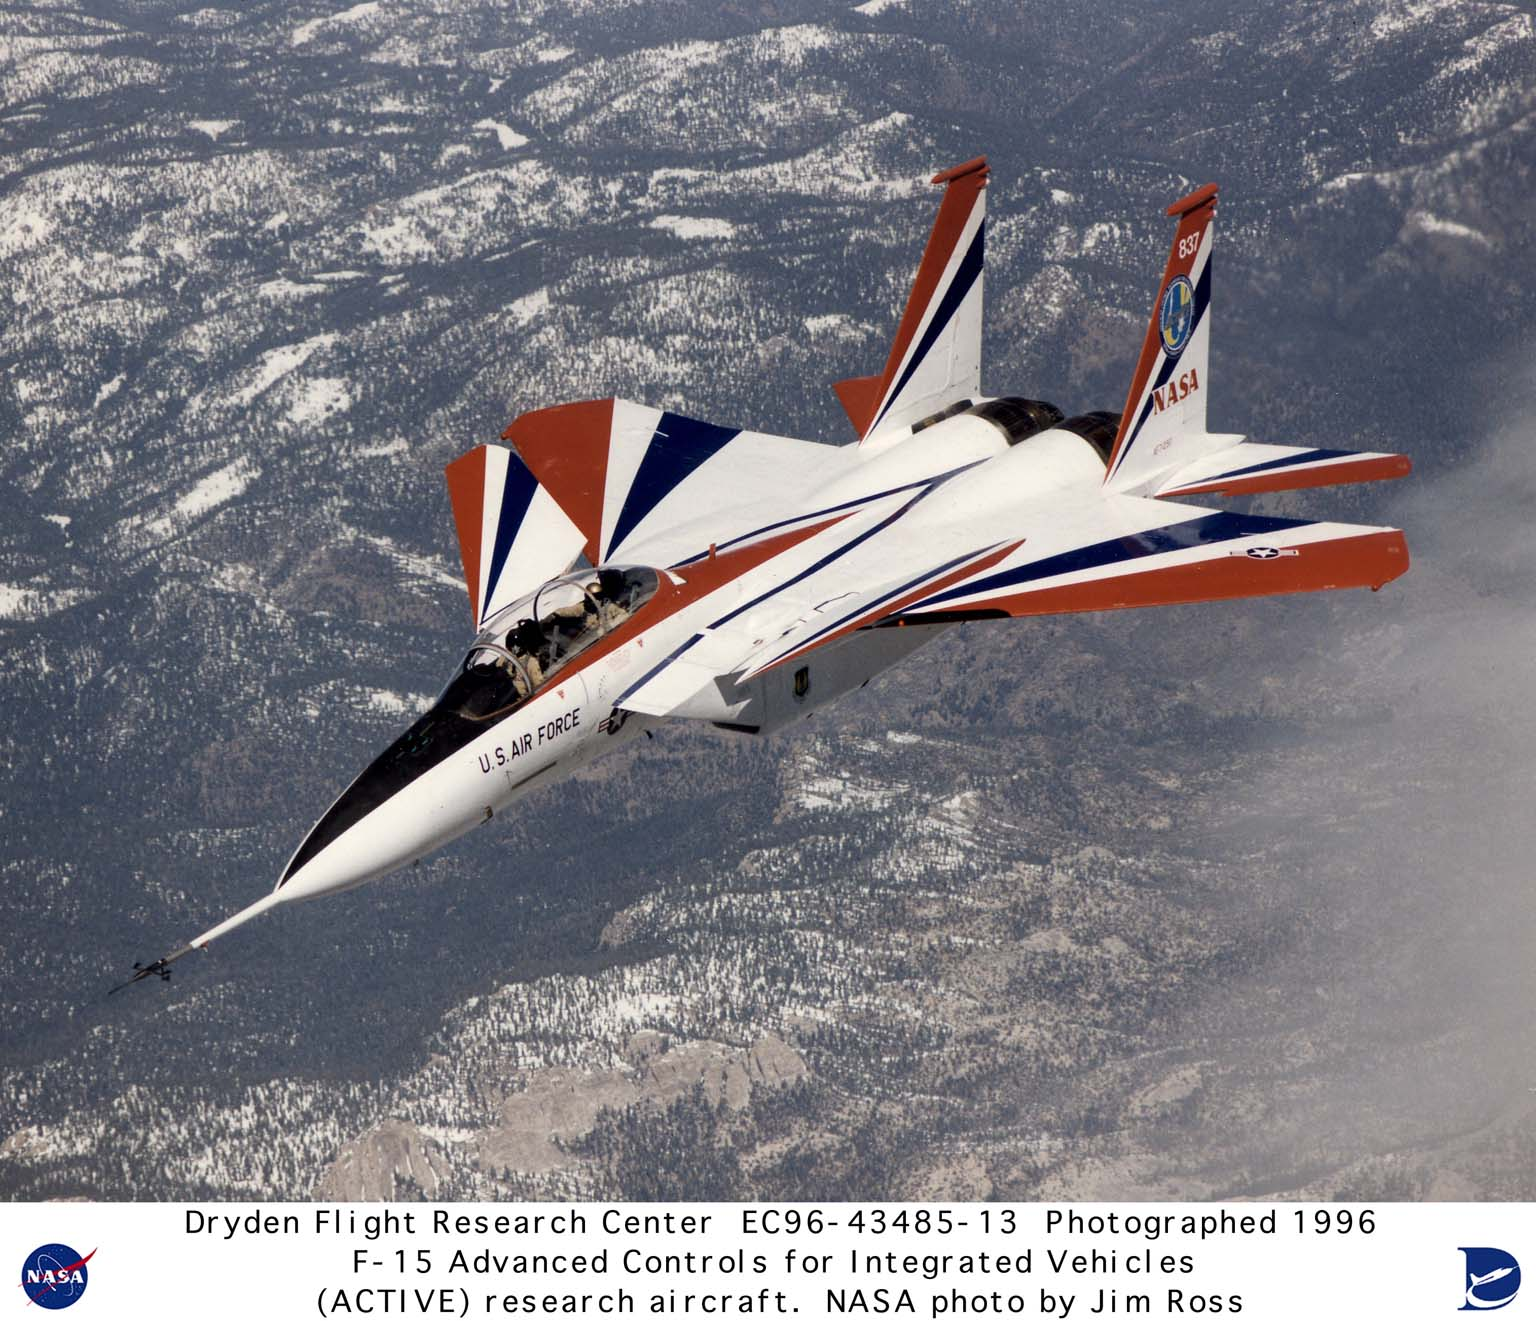 "On Wednesday, April 24, 1996, the F-15 Advanced Control Technology for Integrated Vehicles (ACTIVE) aircraft achieved its first supersonic yaw vectoring flight at Dryden Flight Research Center, Edwards, California. ACTIVE is a joint NASA, U.S. Air Force, McDonnell Douglas Aerospace (MDA) and Pratt & Whitney (P & W) program. The team will assess performance and technology benefits during flight test operations. Current plans call for approximately 60 flights totaling 100 hours. ""Reaching this milestone is very rewarding. We hope to set some more records before we're through,"" stated Roger W. Bursey, P & W's pitch-yaw balance beam nozzle (PYBBN) program manager. A pair of P & W PYBBNs vectored (horizontally side-to-side, pitch is up and down) the thrust for the MDA manufactured F-15 research aircraft. Power to reach supersonic speeds was provided by two high-performance F100-PW-229 engines that were modified with the multi-directional thrust vectoring nozzles. The new concept should lead to significant increases in performance of both civil and military aircraft flying at subsonic and supersonic speeds."